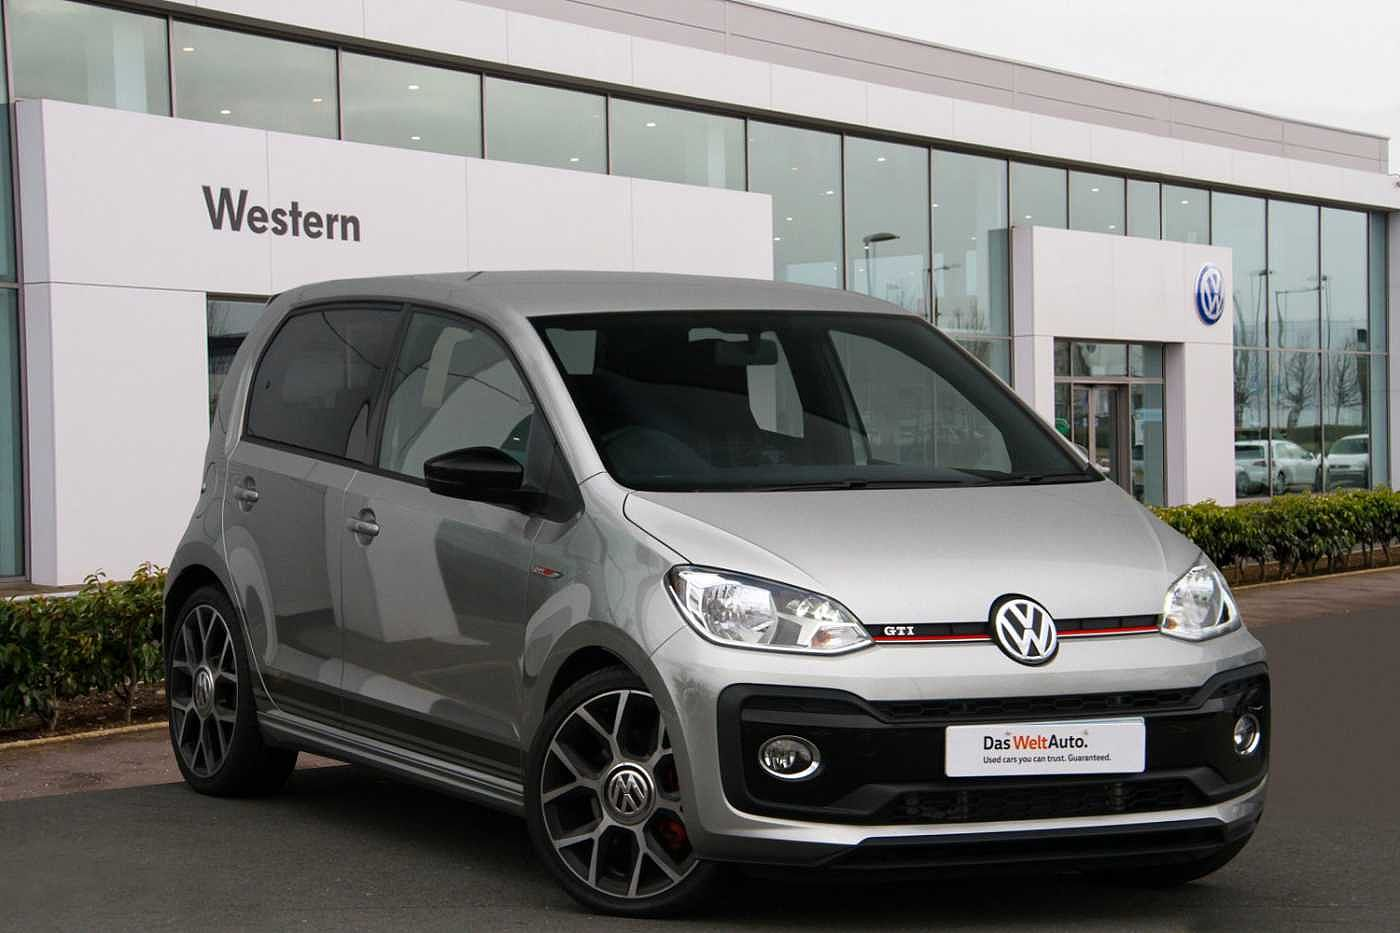 2019 up! 1.0 115PS up! GTI 5Dr for Sale in Edinburgh